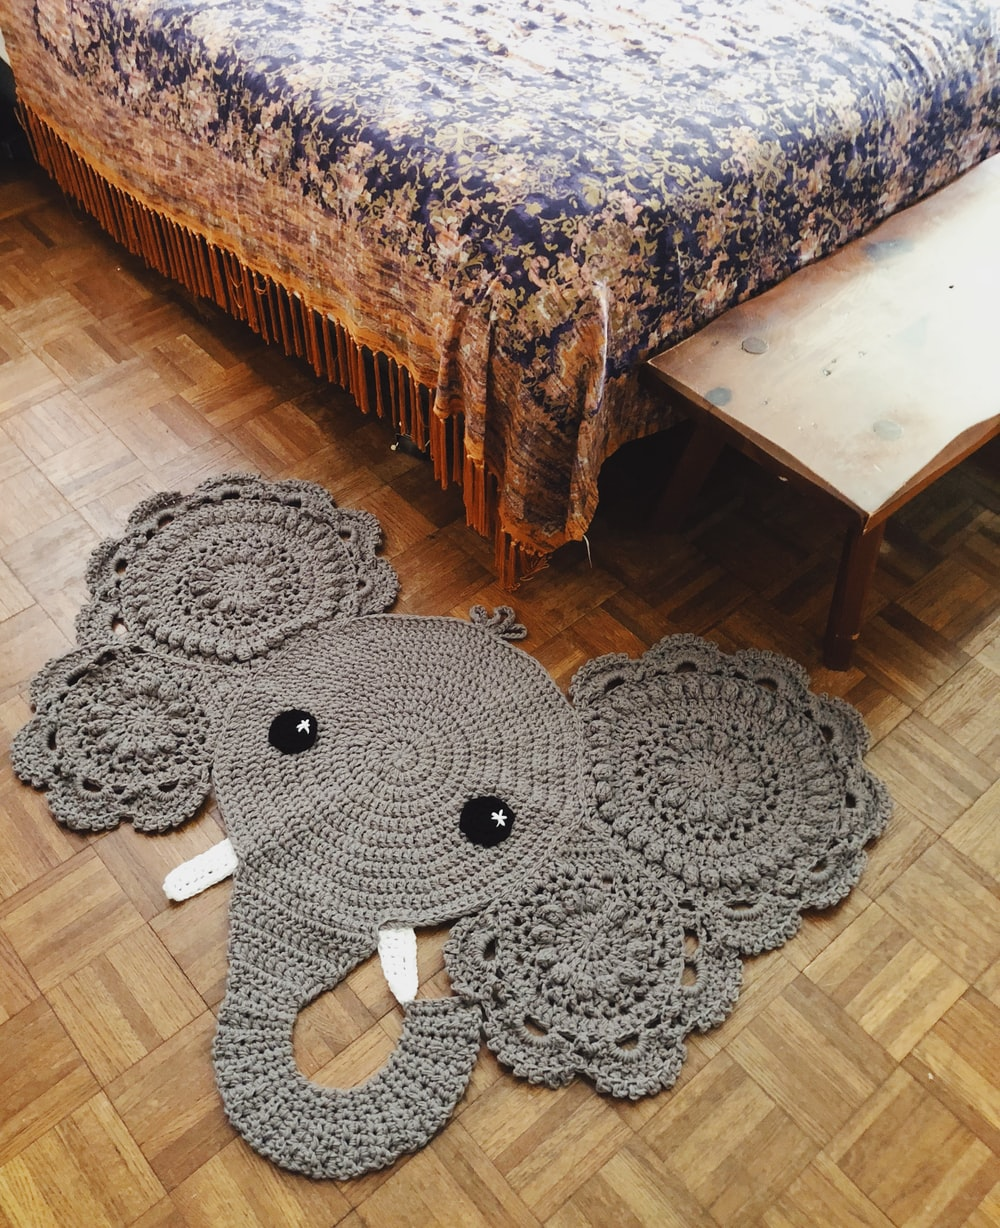 black and gray elephant plush toy on brown wooden table